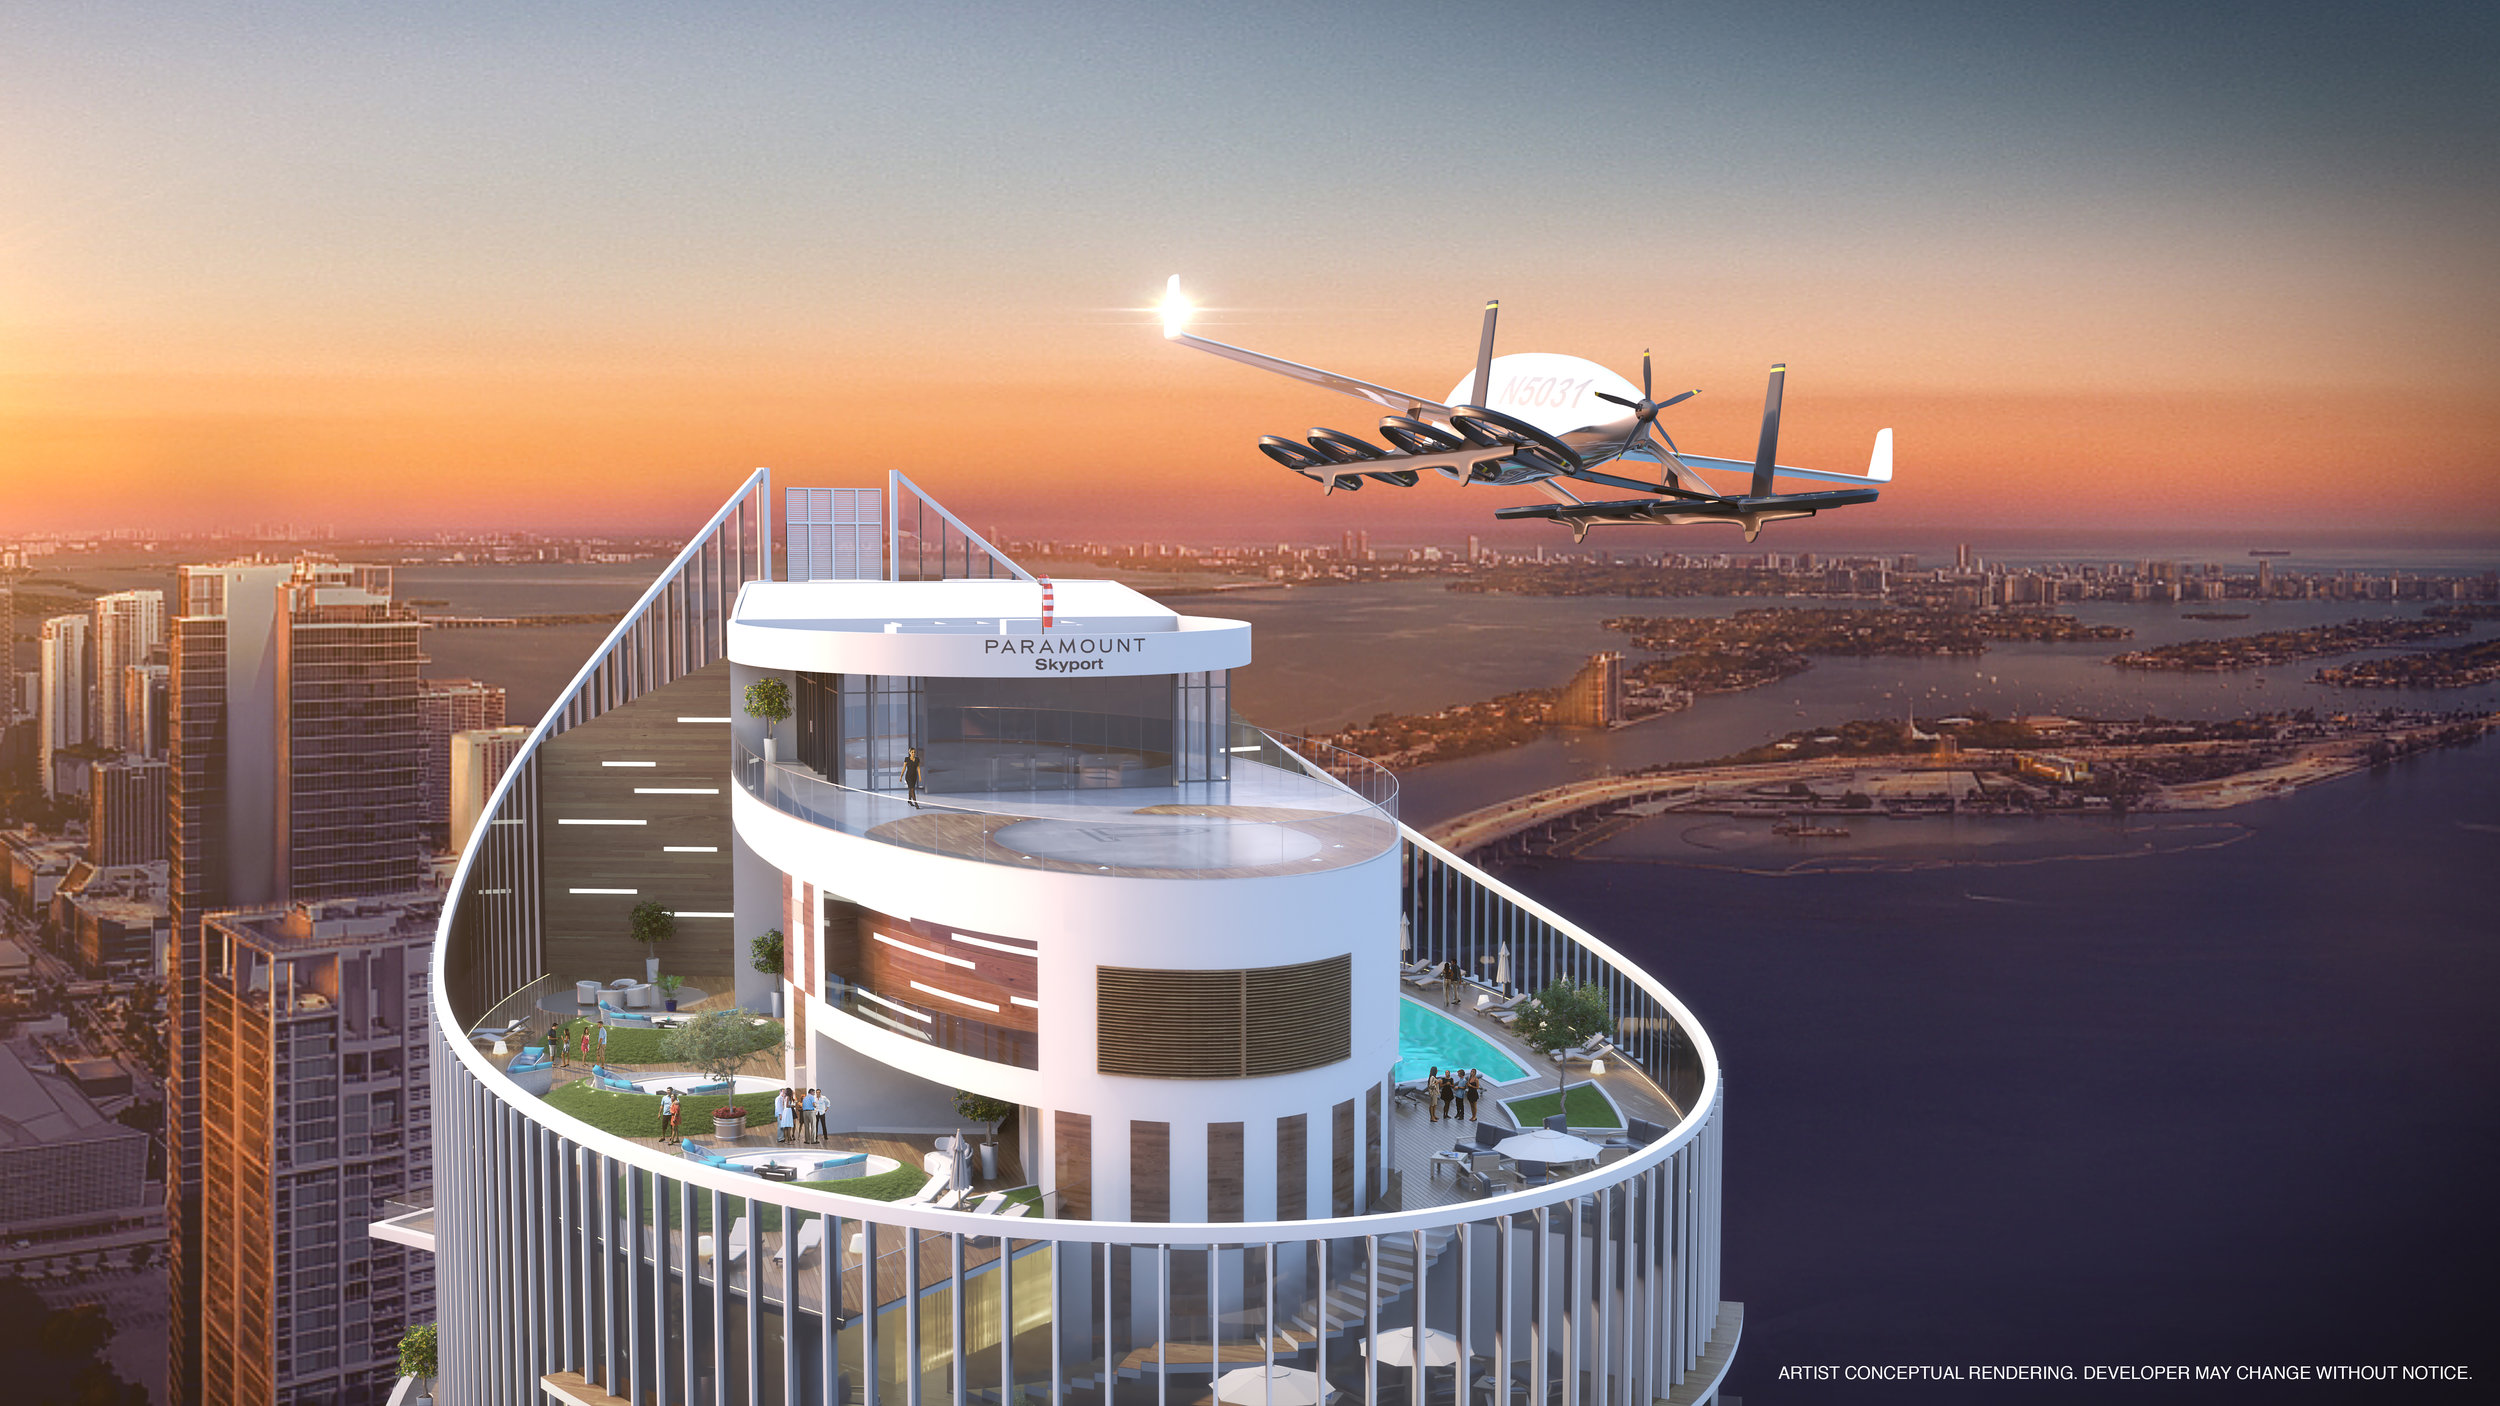 PARAMOUNT Miami Worldcenter Rolls Out Rooftop Skyport in Anticipation of Urban Aviation